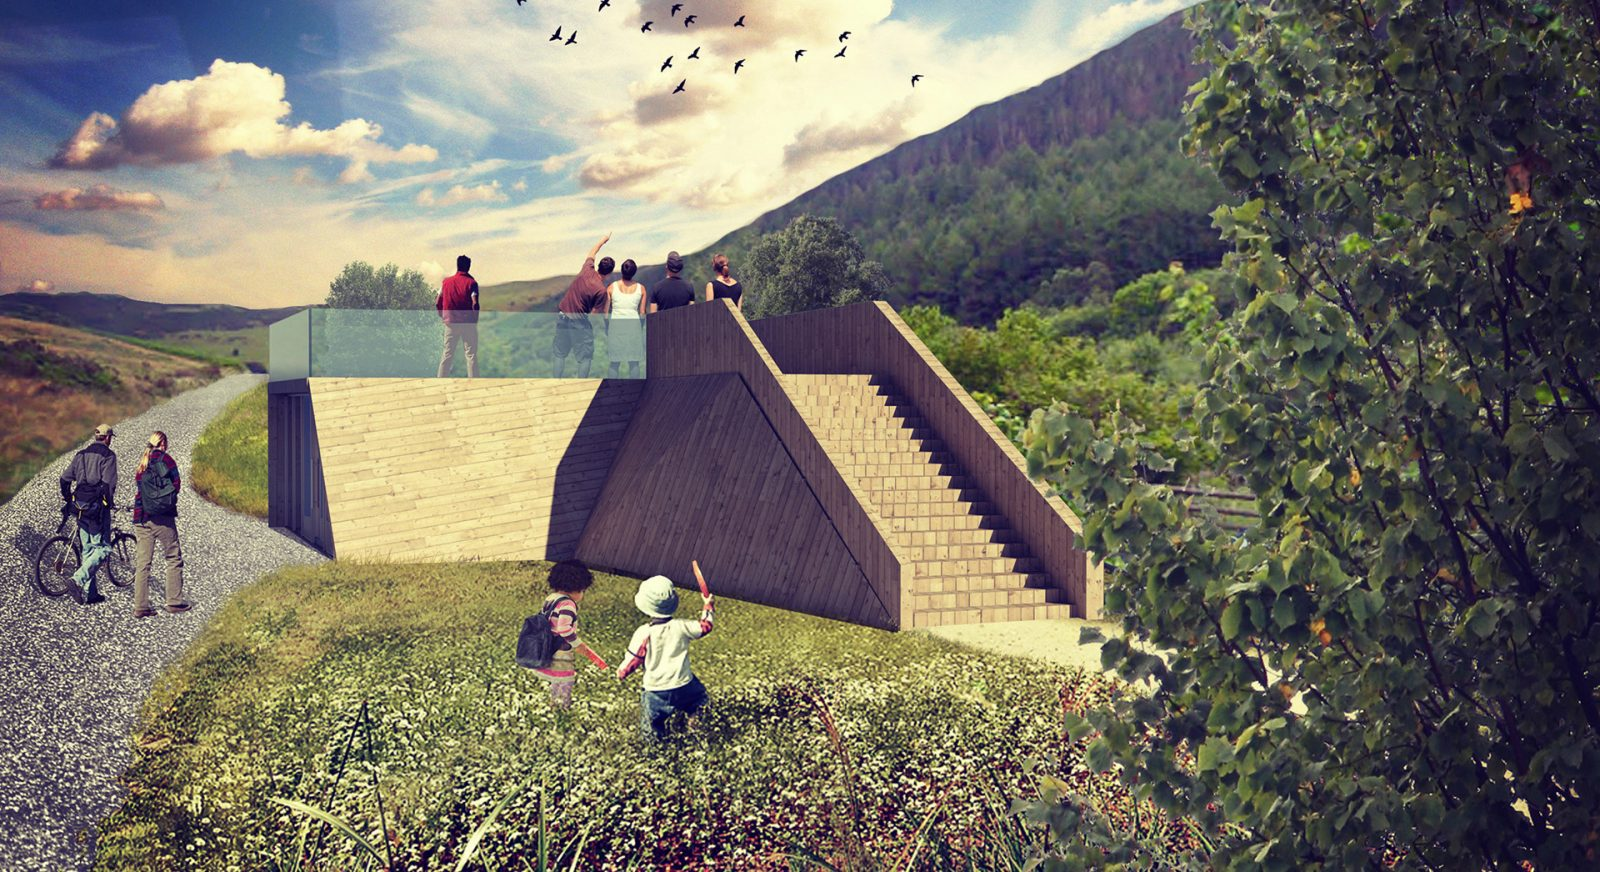 FT gilfach nature reserve visitor centre wales architects jersey11